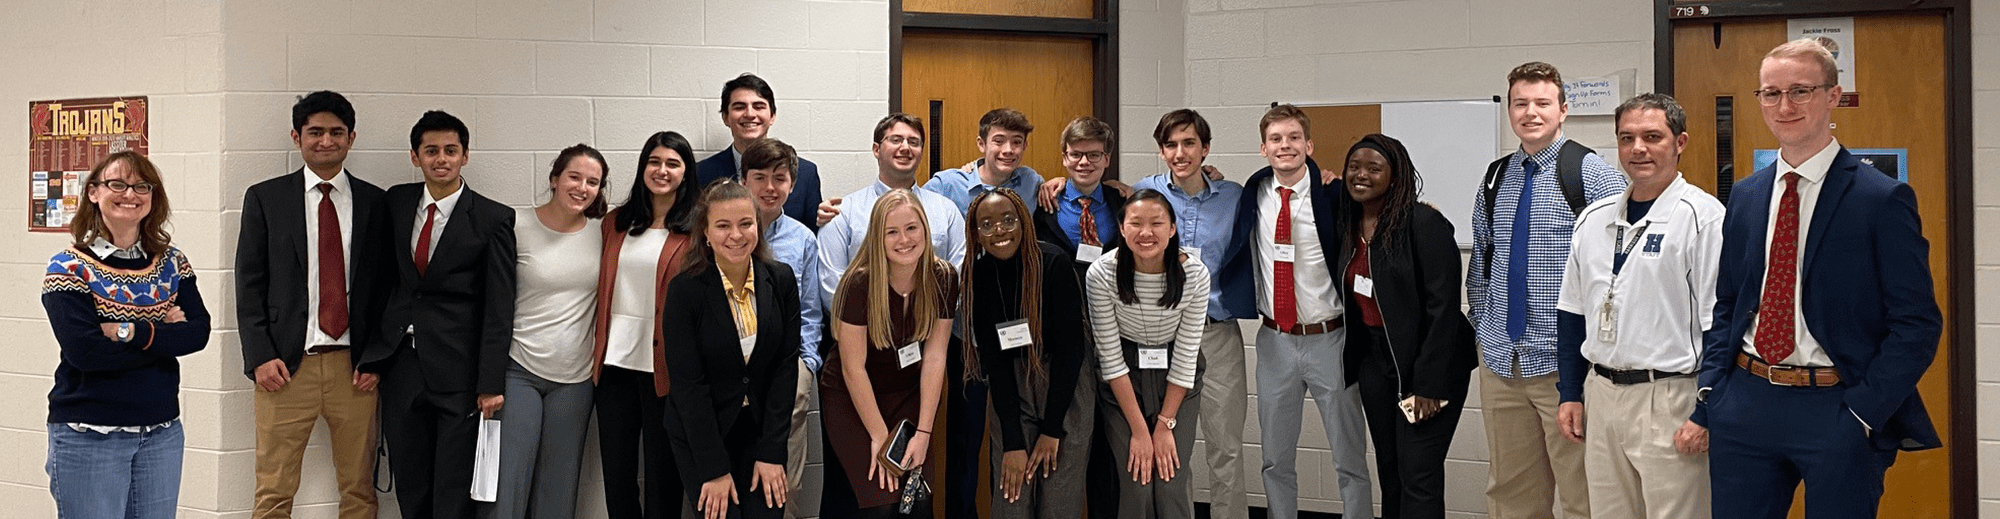 Model UN members posing together in a hallway